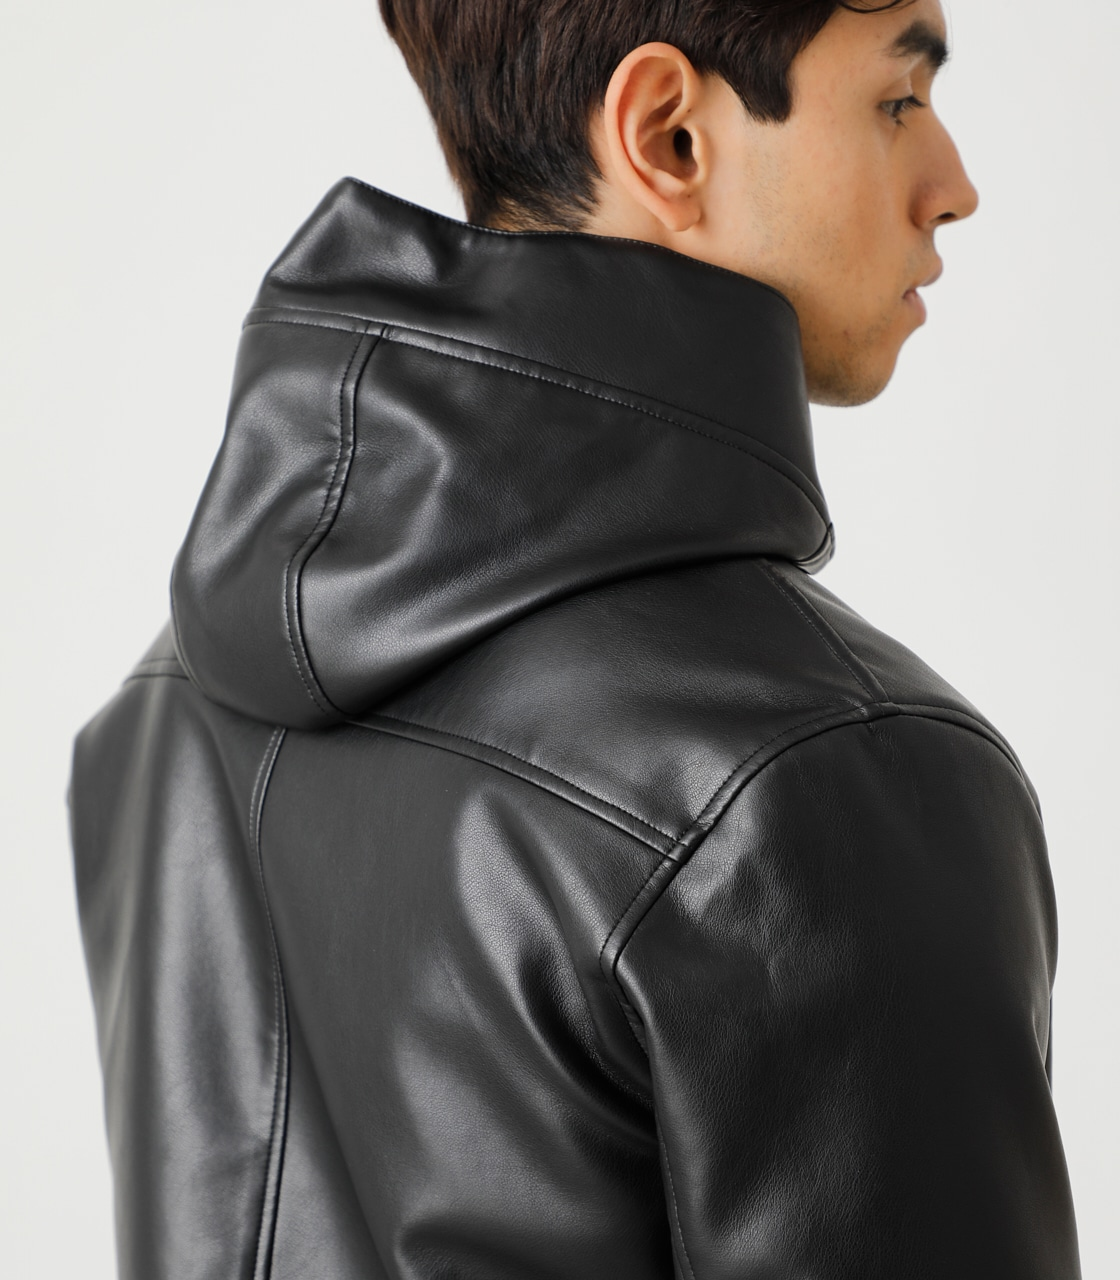 ECO LEATHER HOODED/エコレザーフーデッド 詳細画像 BLK 8